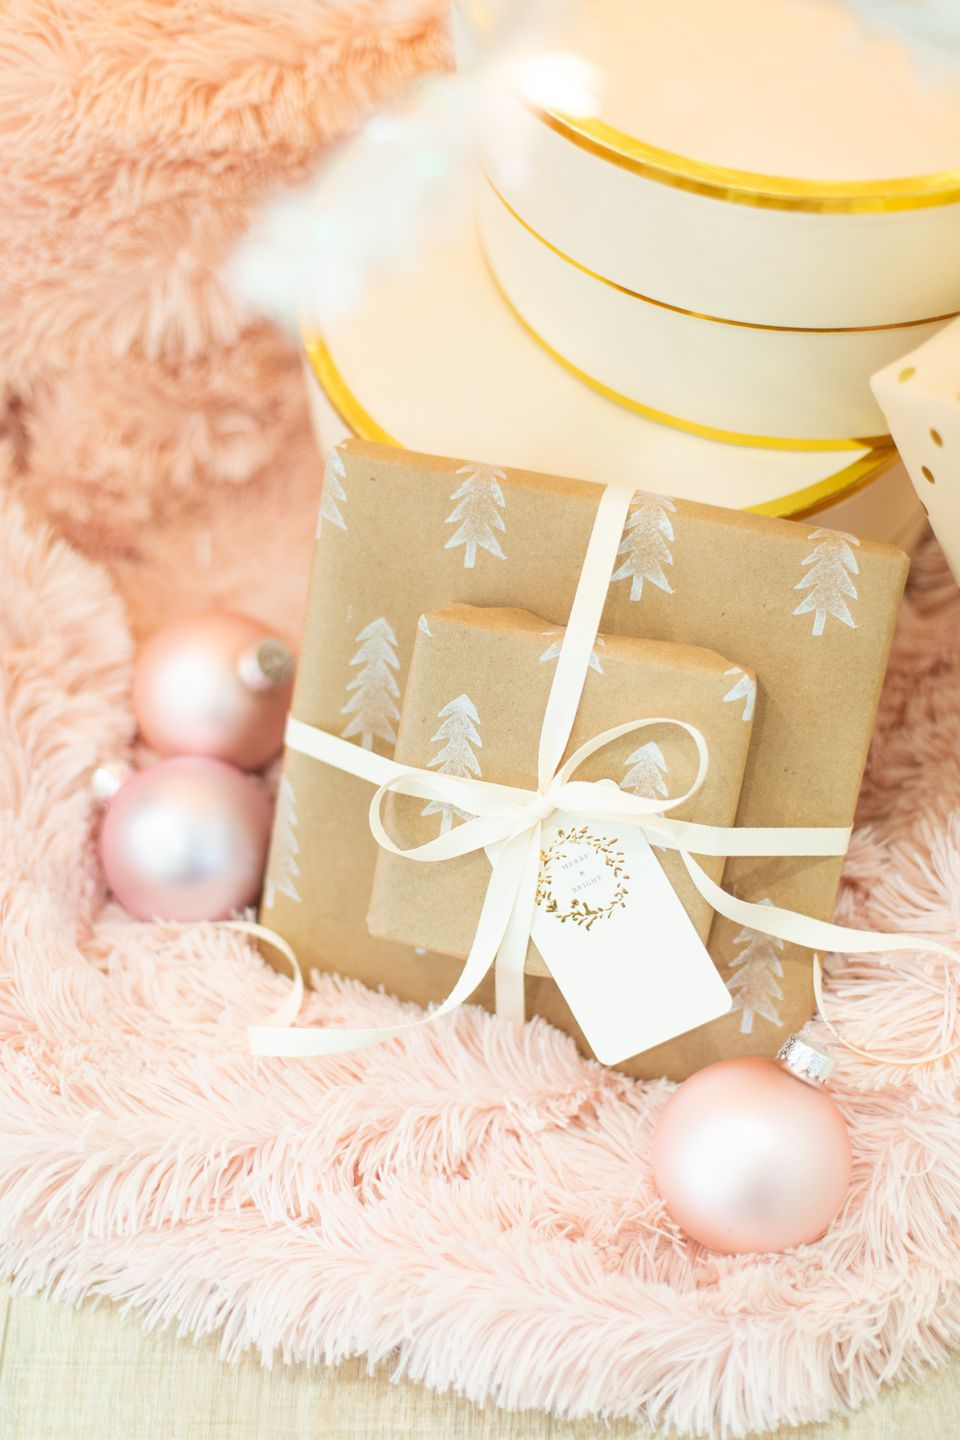 How to make your own DIY wrapping paper